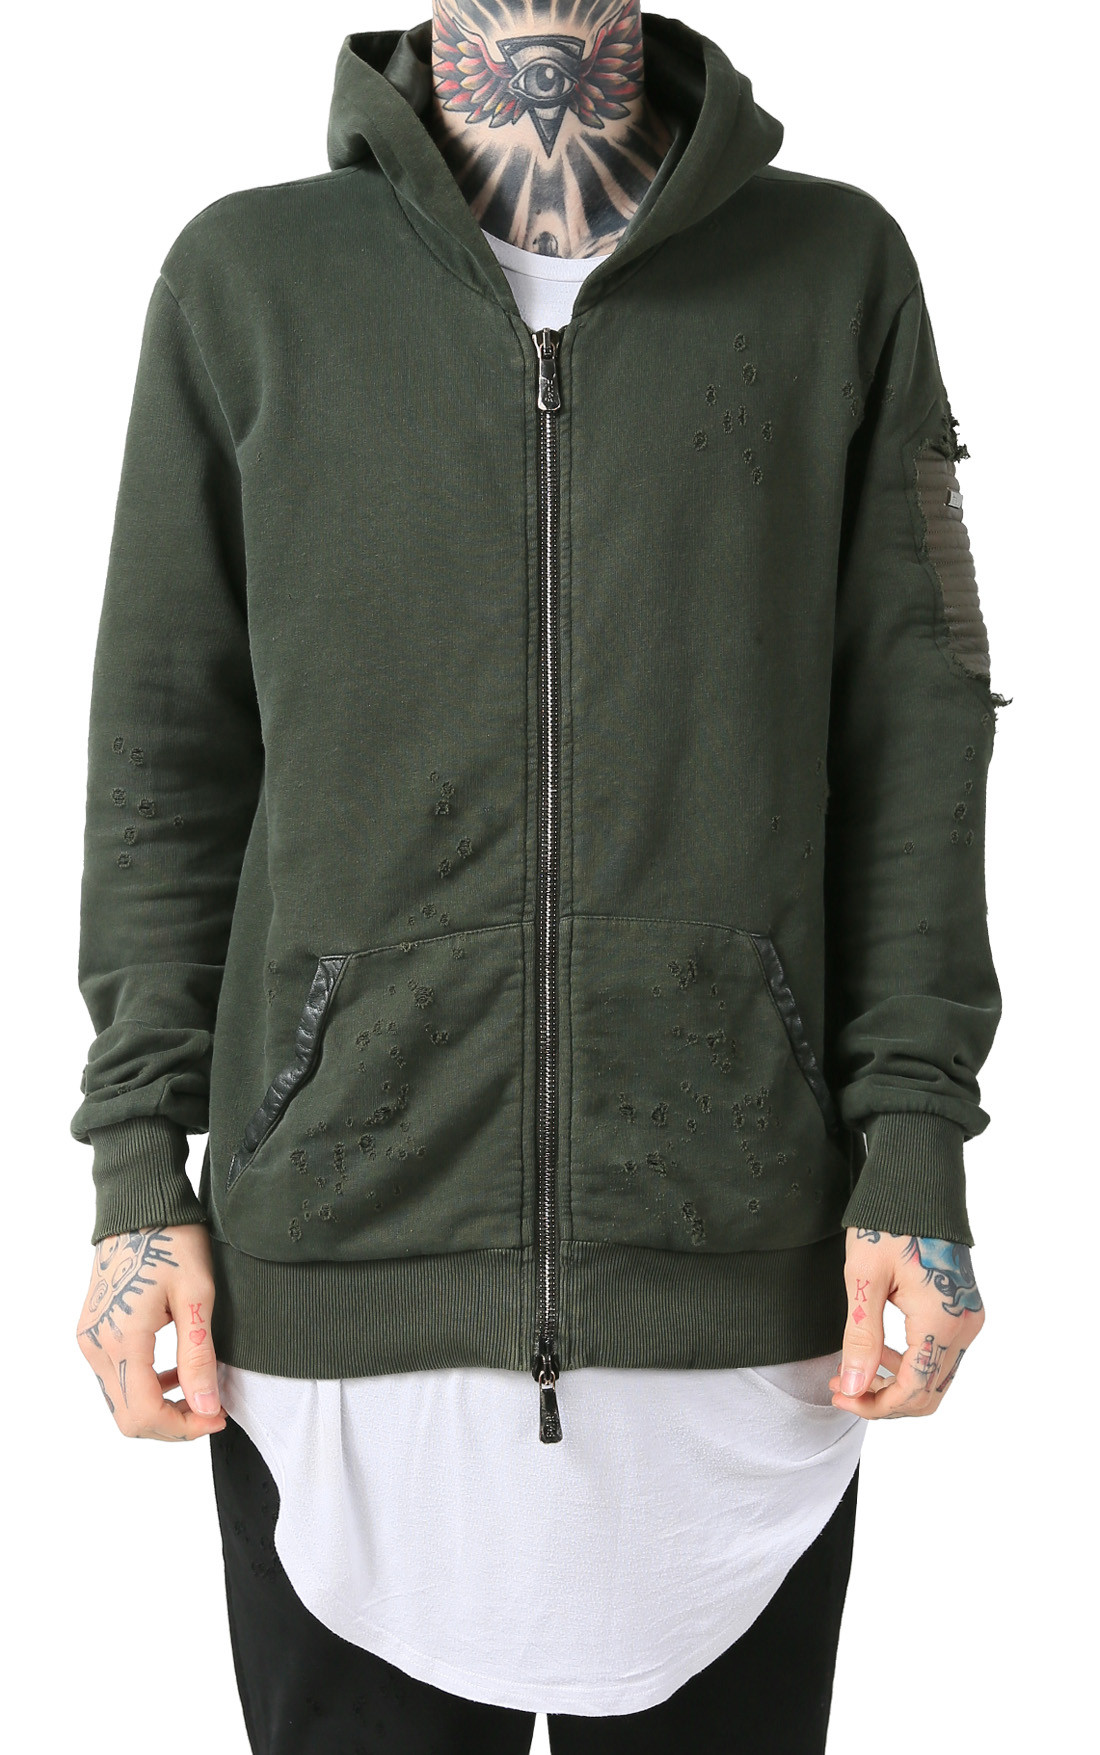 RH45 | Mens Green Hoodie with Leather | RH45 Hoodie Online | Boudi Fashion | H201